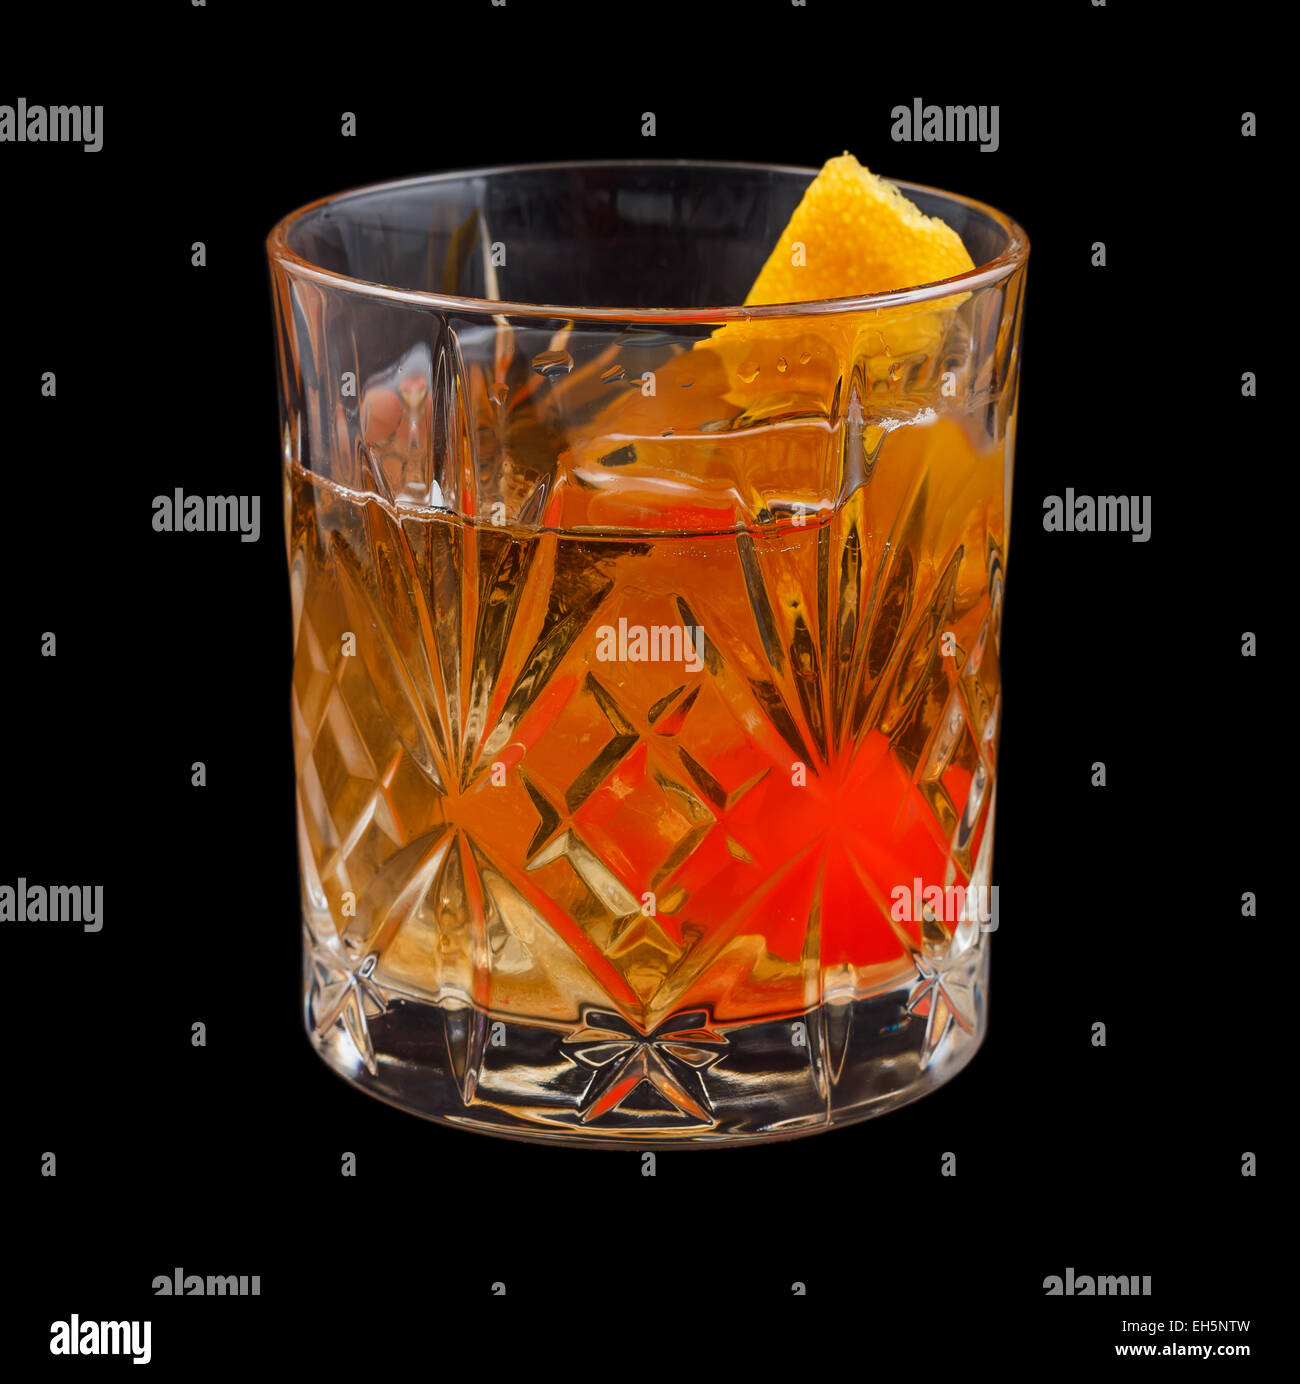 Old Fashioned drink - Stock Image